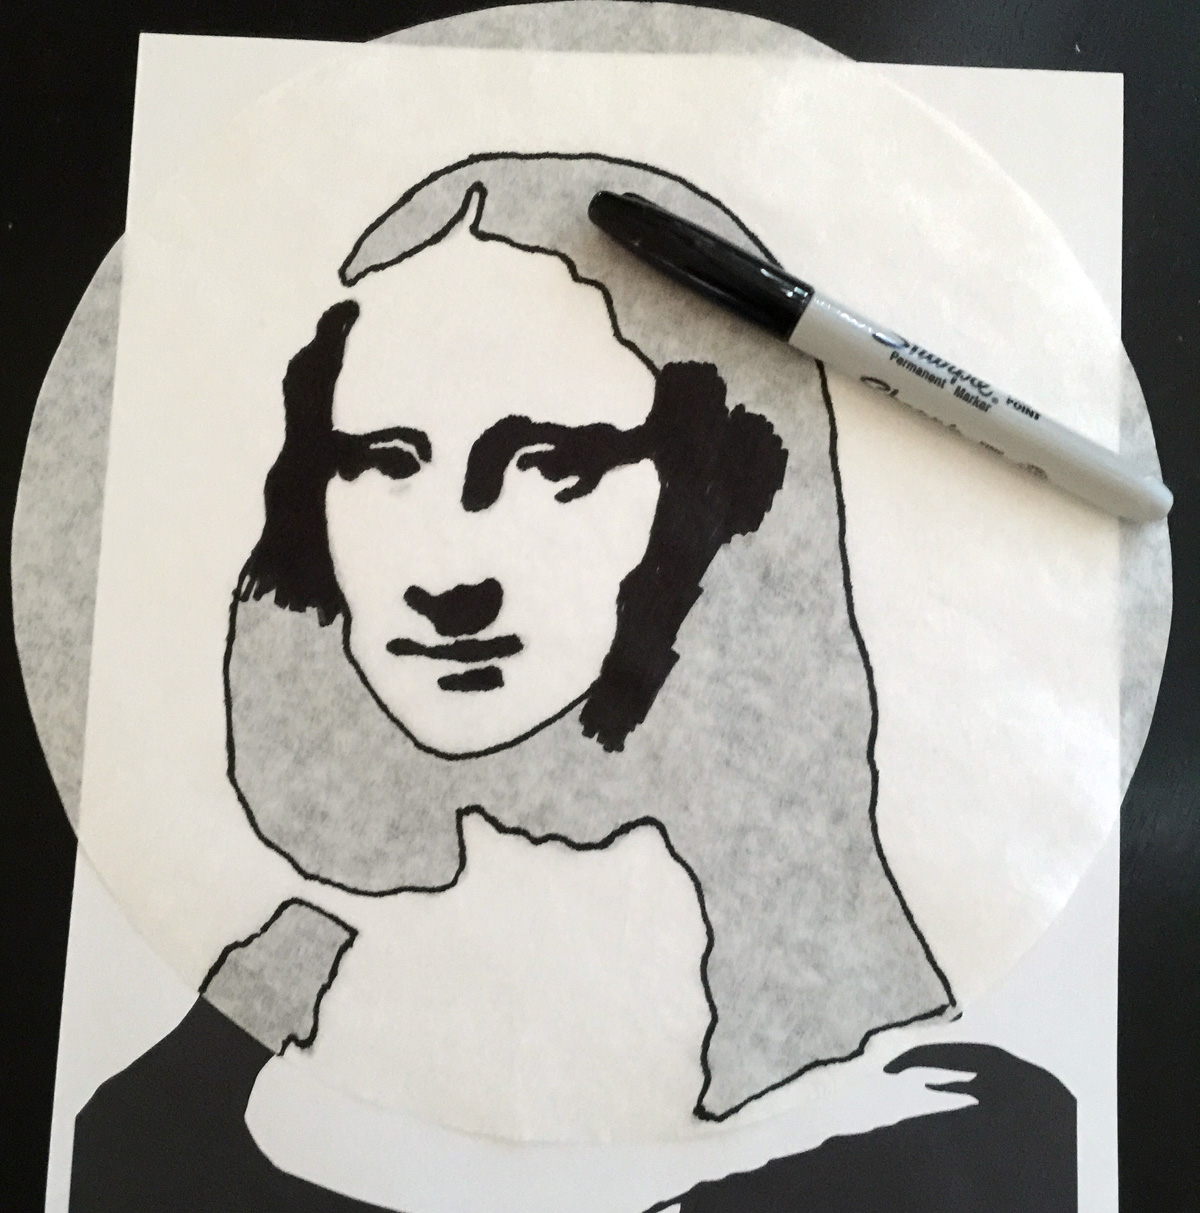 mona lisa paper Enlarging the mona lisa with grids submitted by:  squares of paper,  it will create an intrigue for the mona lisa from students.